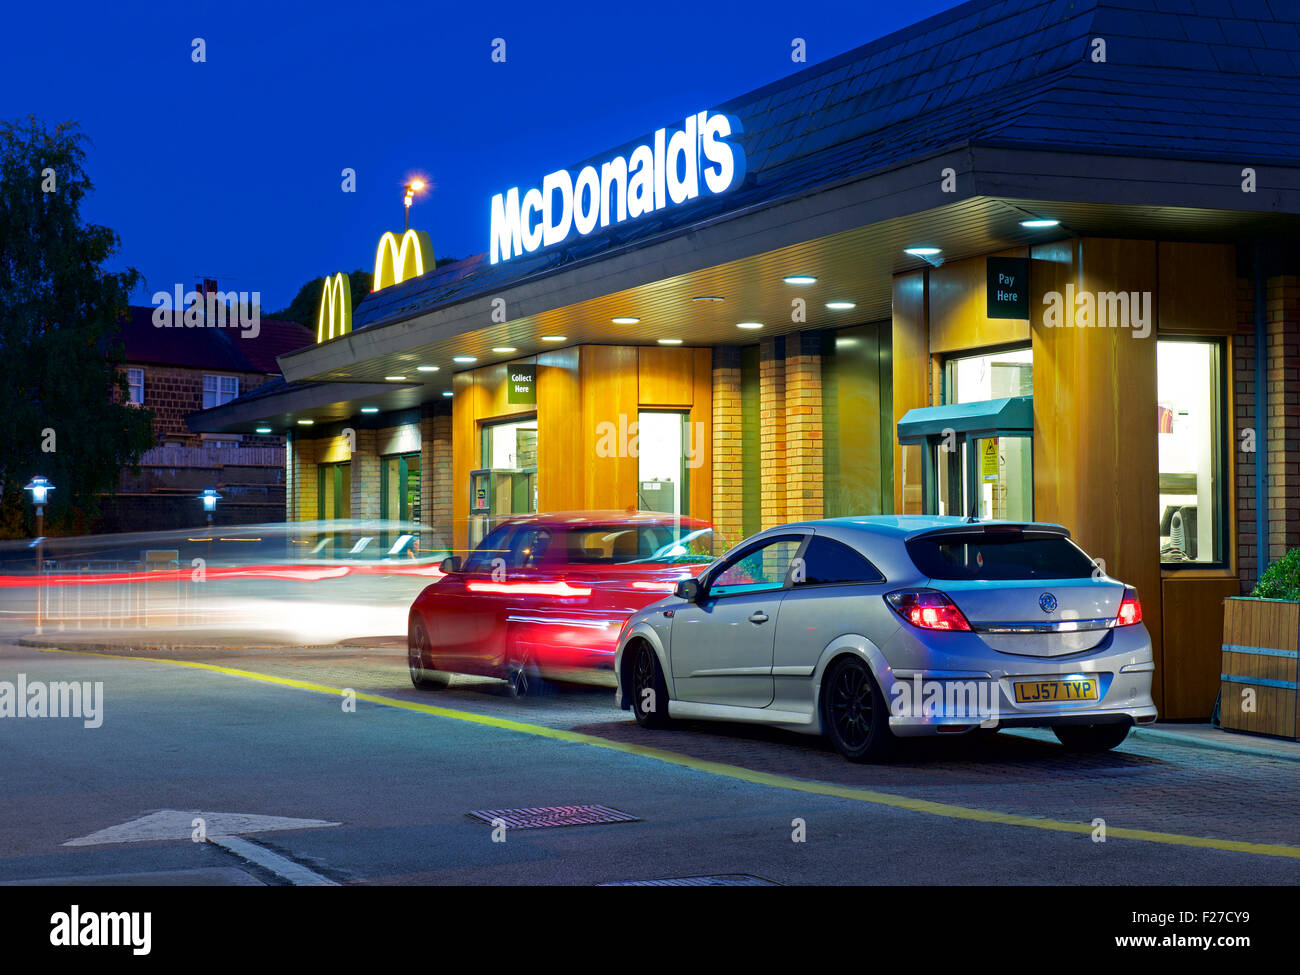 Cars at McDonald's drive-in restaurant, at night, England UK - Stock Image